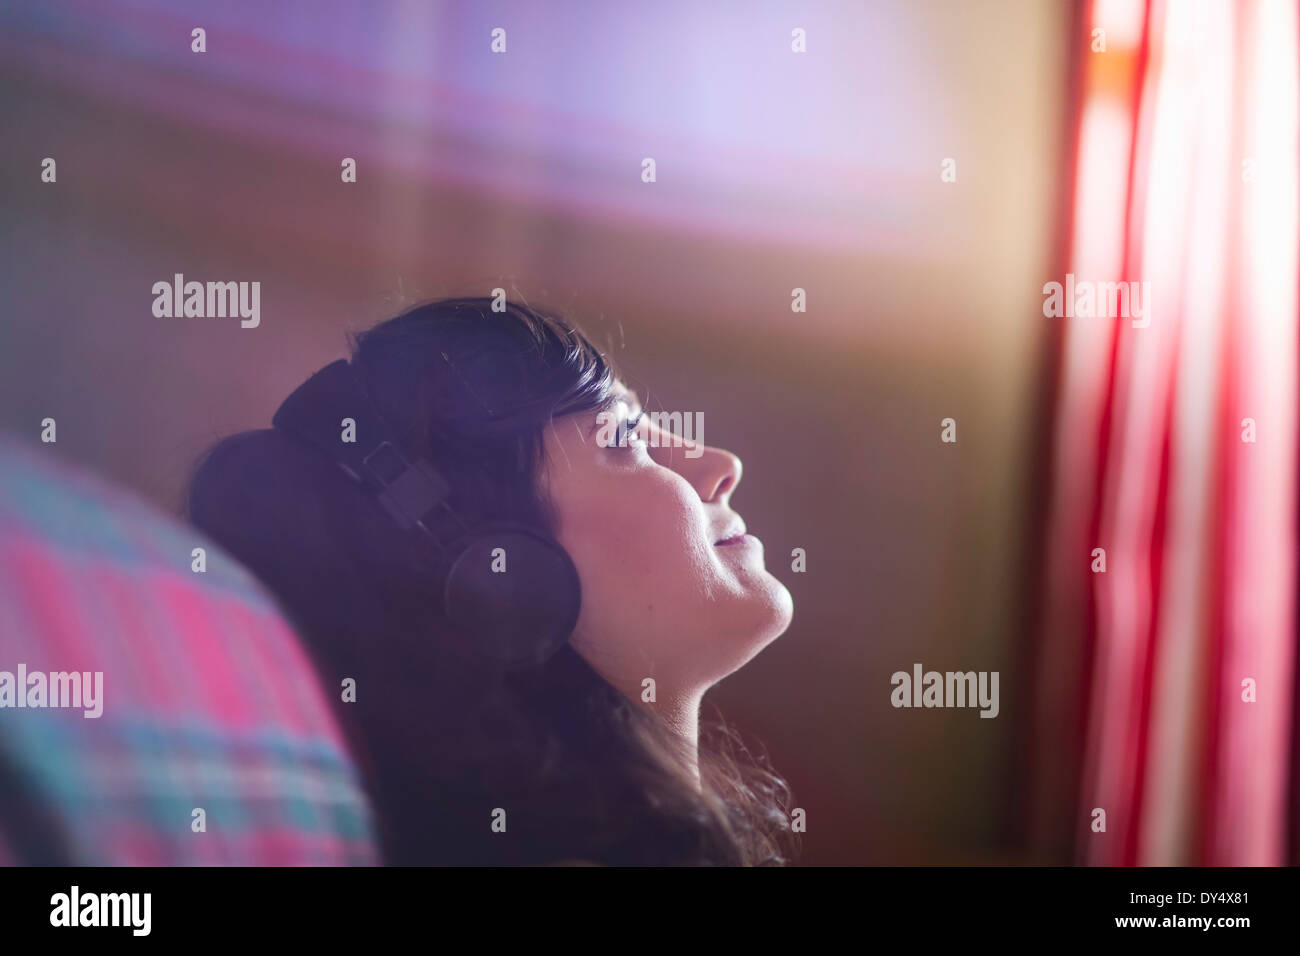 Young woman wearing headphones, daydreaming - Stock Image